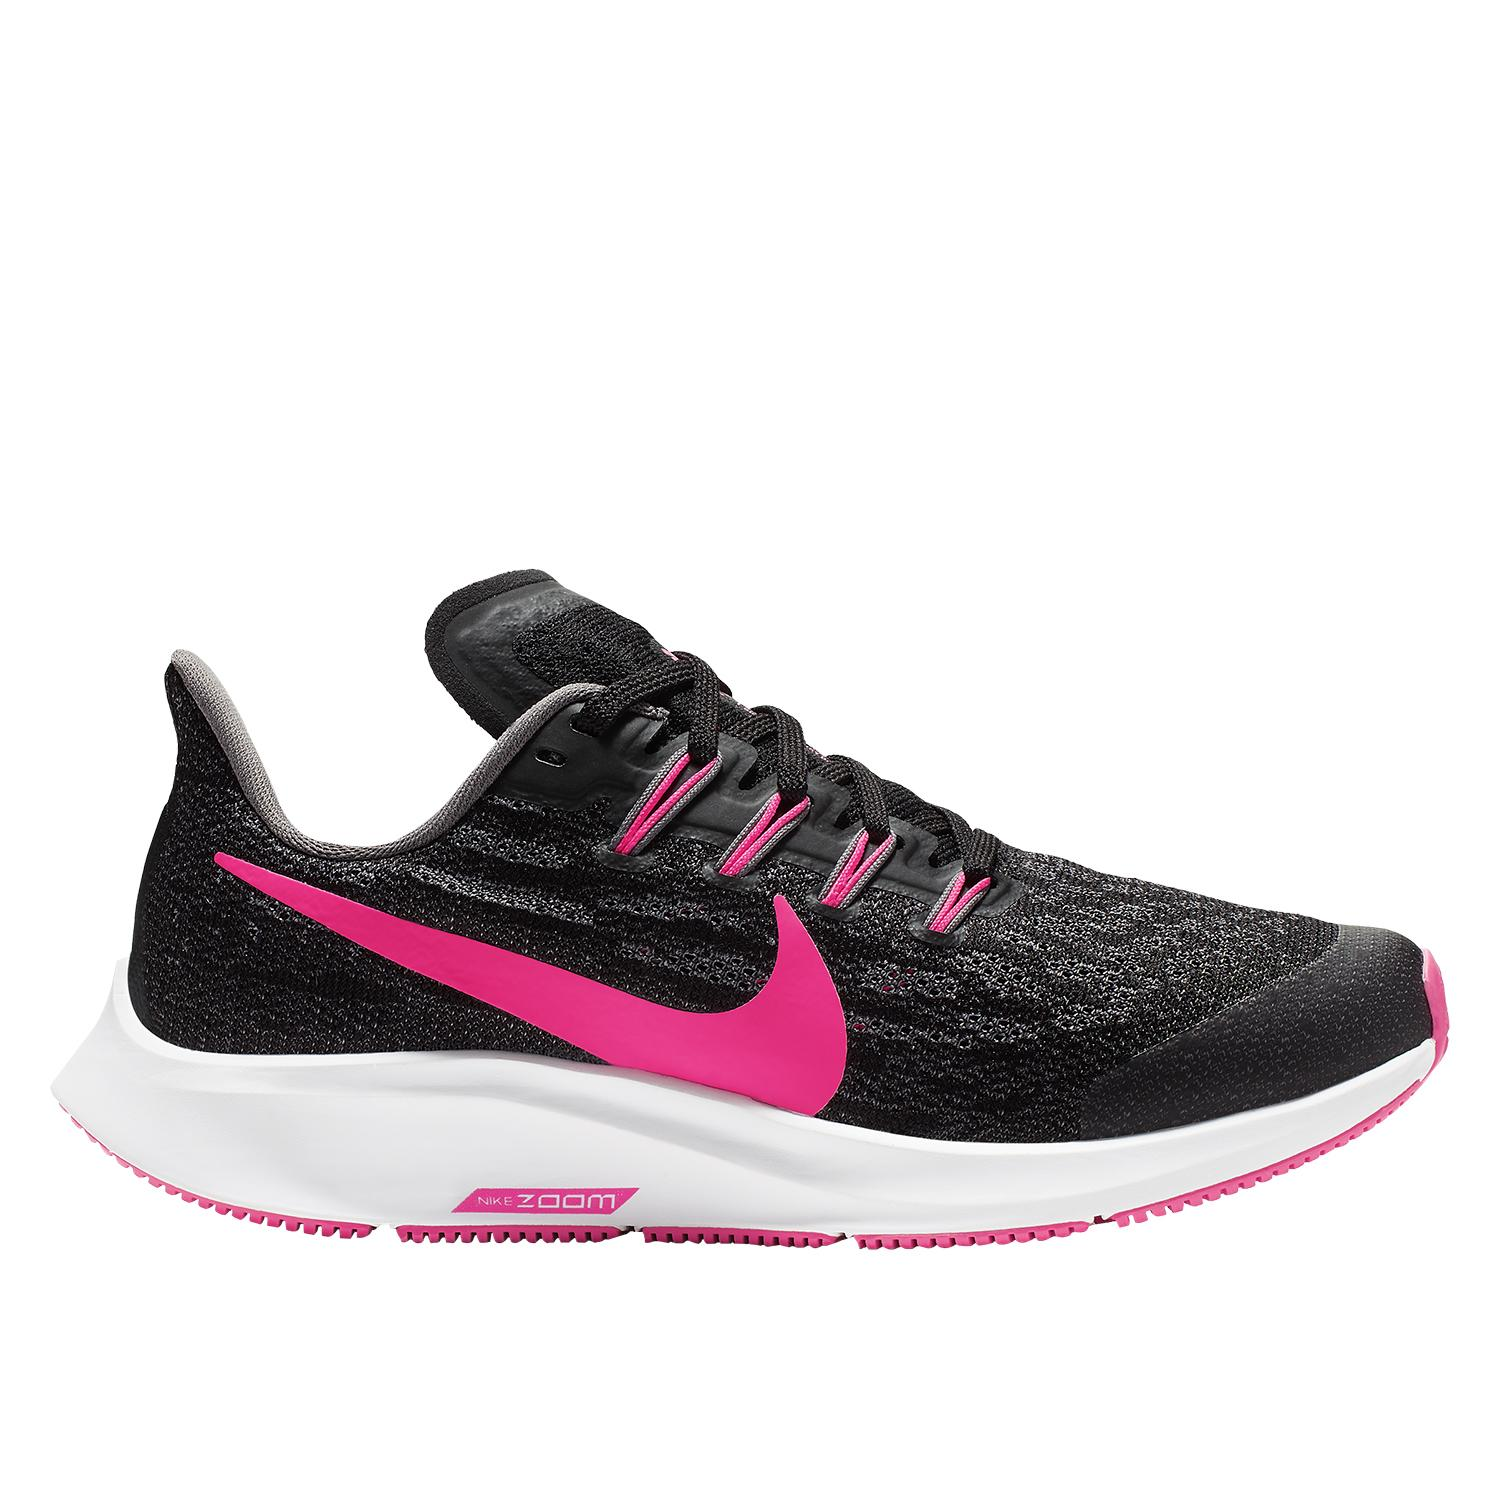 la moitié e9529 7e633 Nike Air Zoom Pegasus 36 GS Kid's Running Shoe